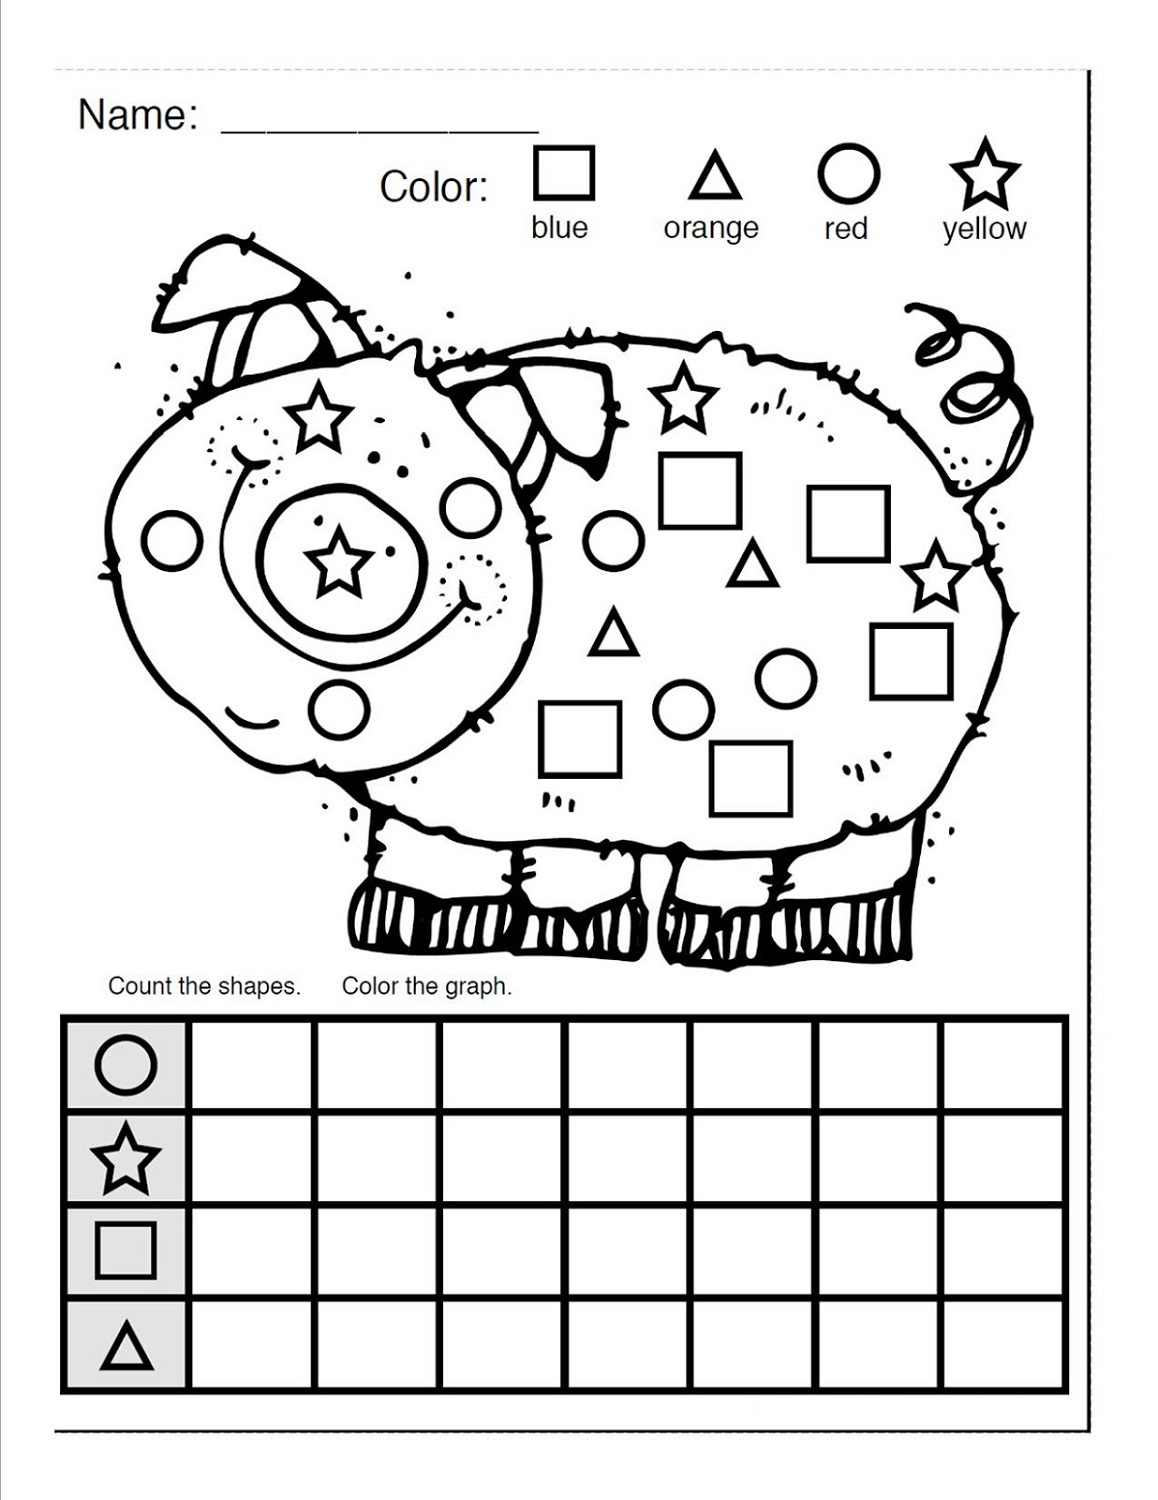 Kindergarten Worksheet Geometric Shapes